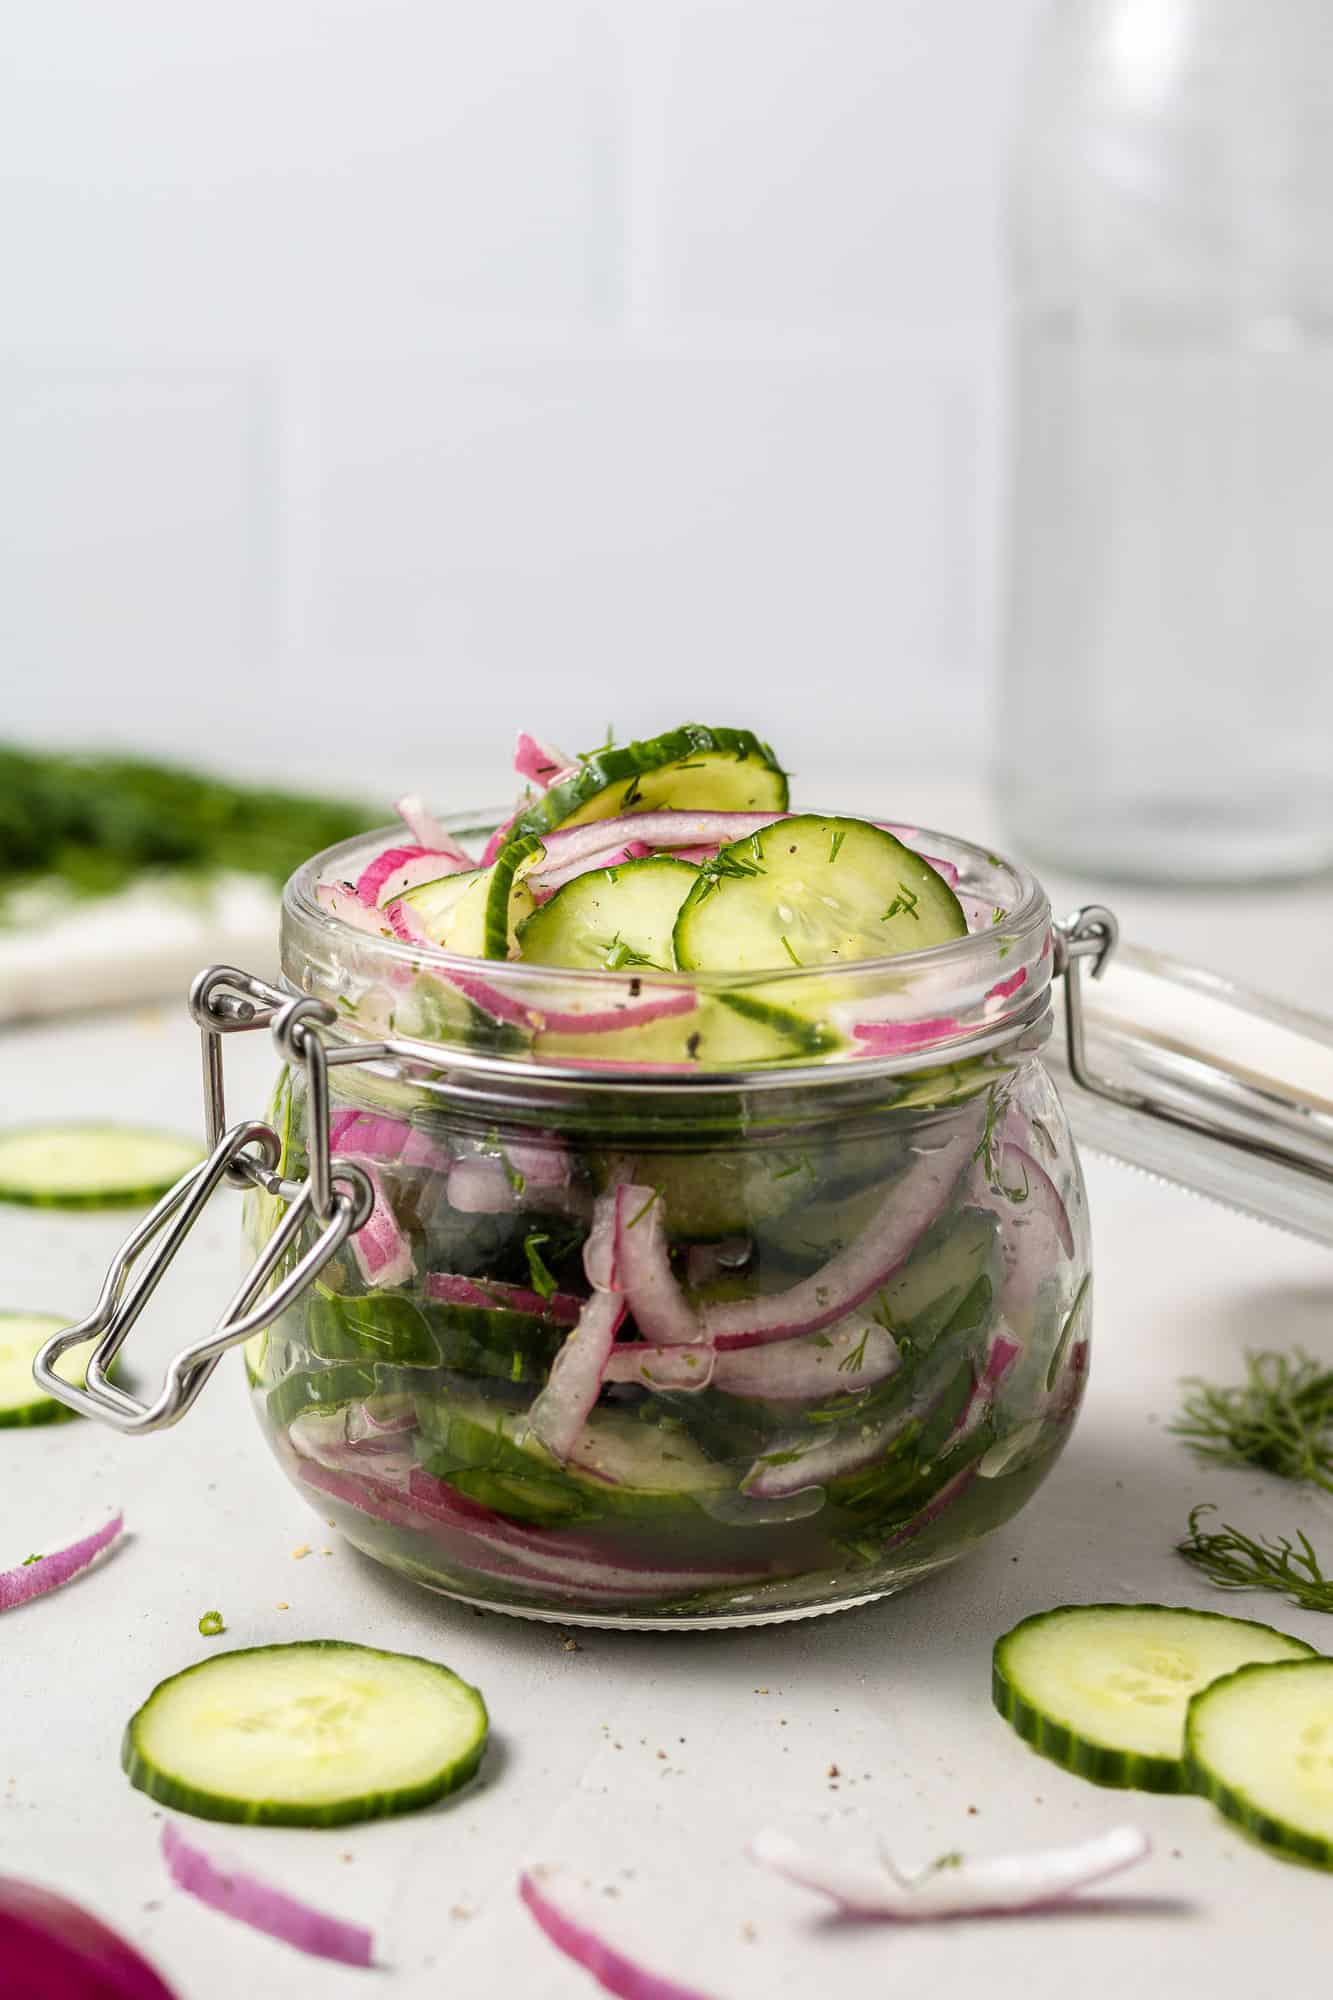 Jar filled with sliced cucumbers and onions in a brine.